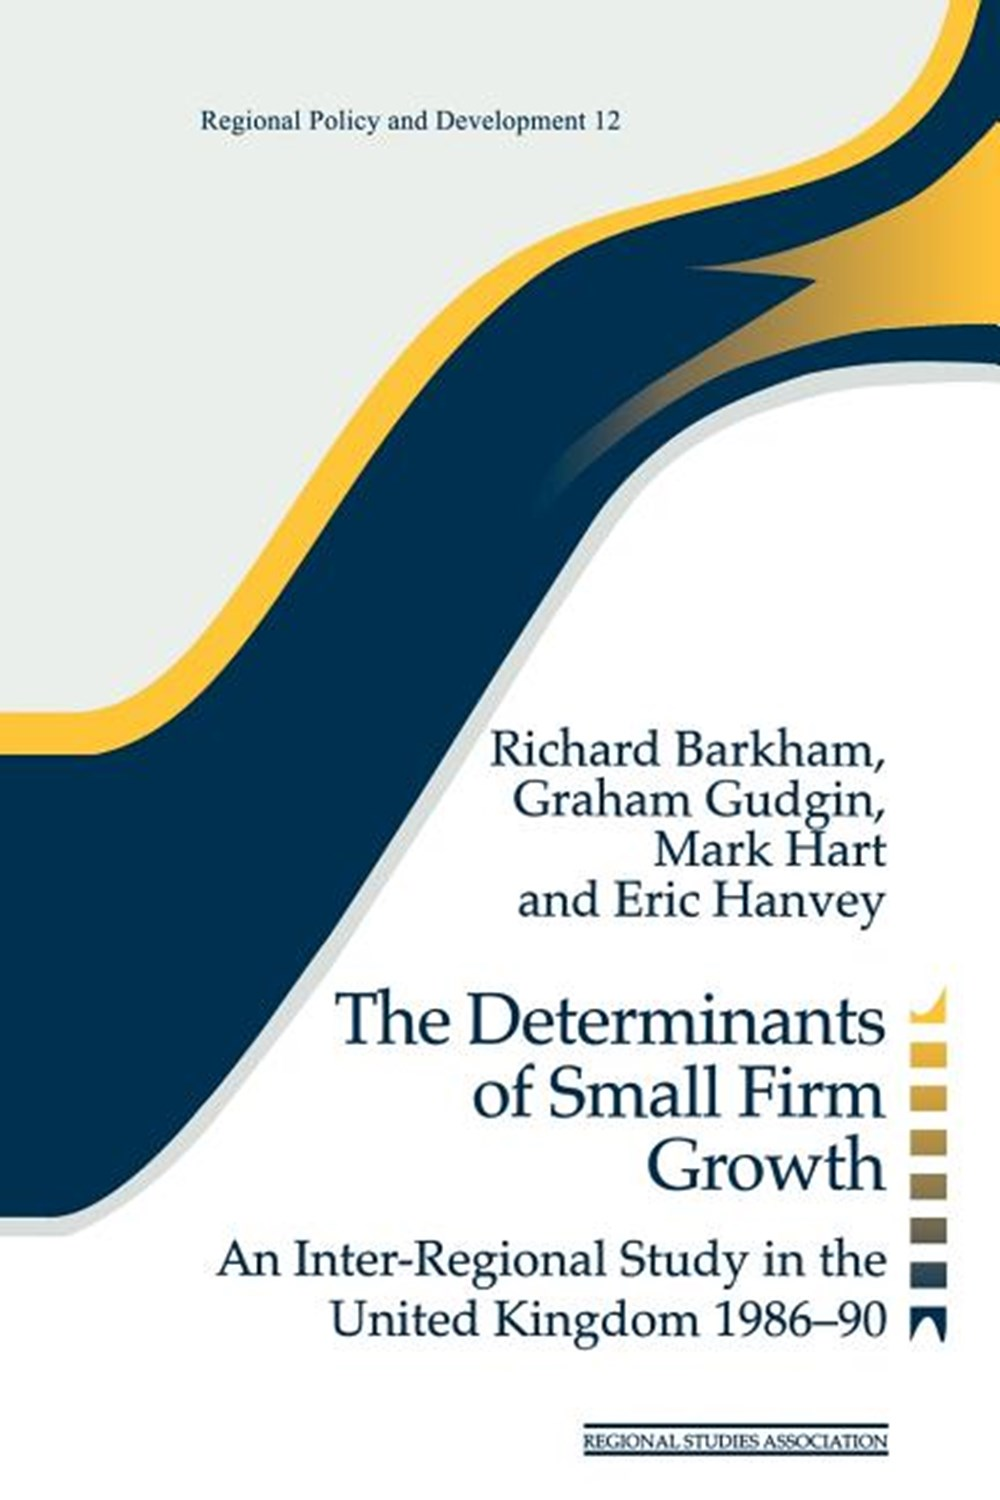 Determinants of Small Firm Growth An Inter-Regional Study in the United Kingdom 1986-90